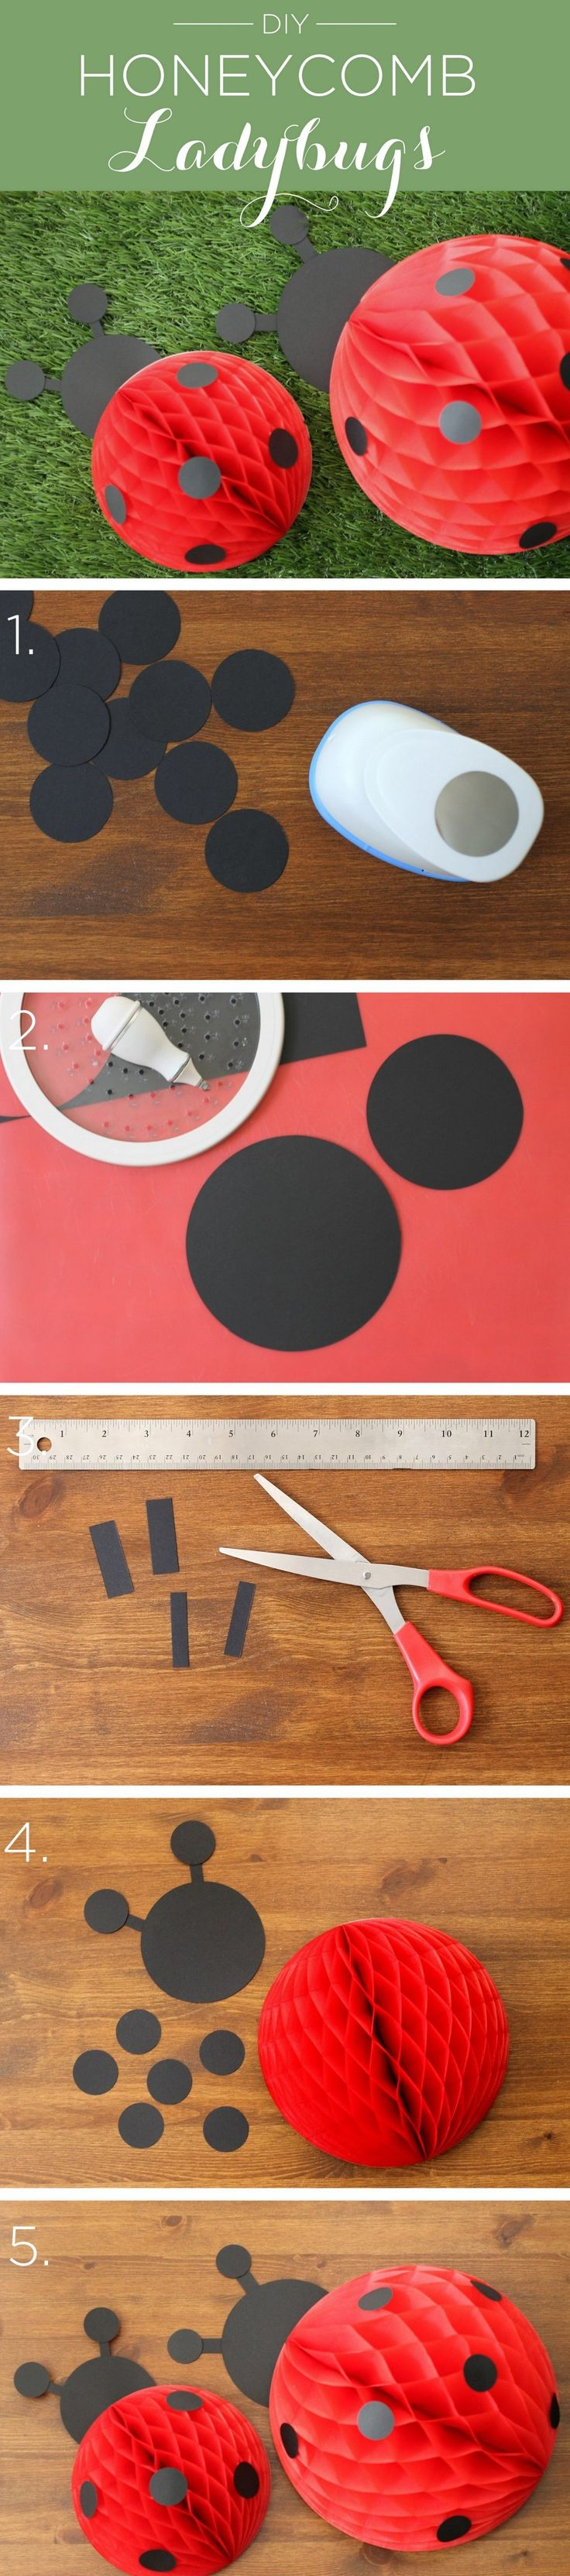 DIY Honeycomb Ladybugs! Perfect for a little girls Ladybug Birthday Party!                                                                                                                                                      Más